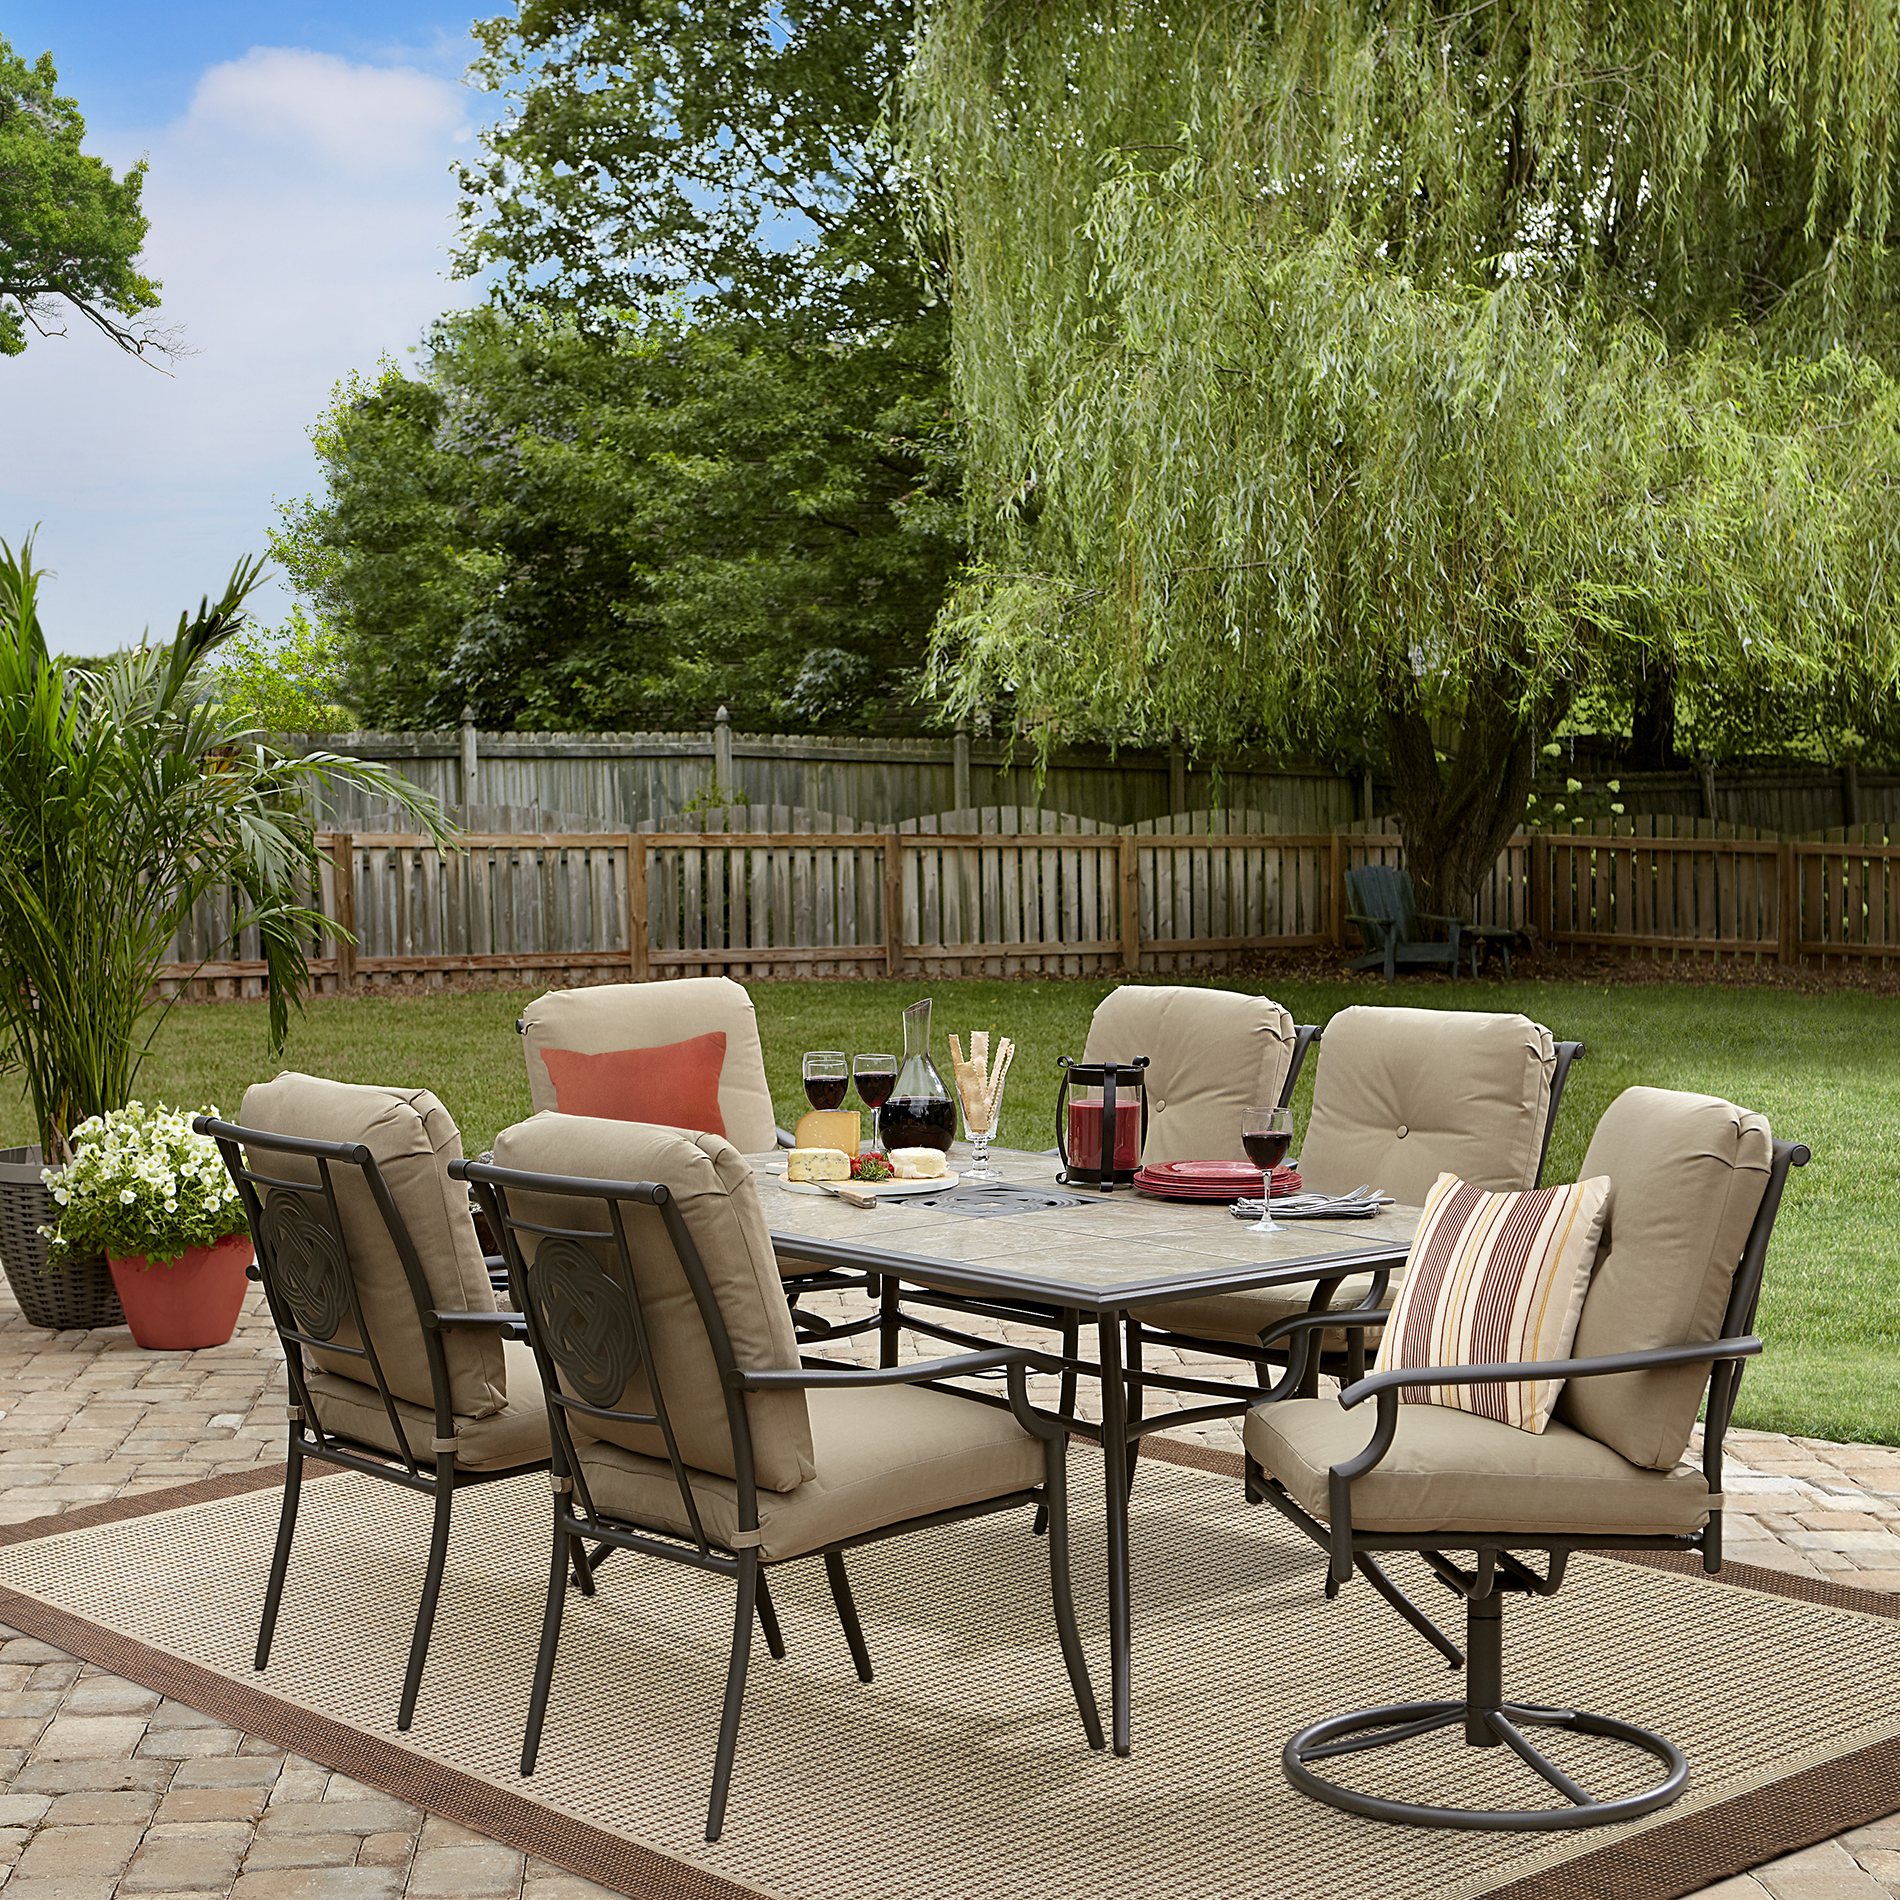 How To Pick The Best Outdoor Dining Set?